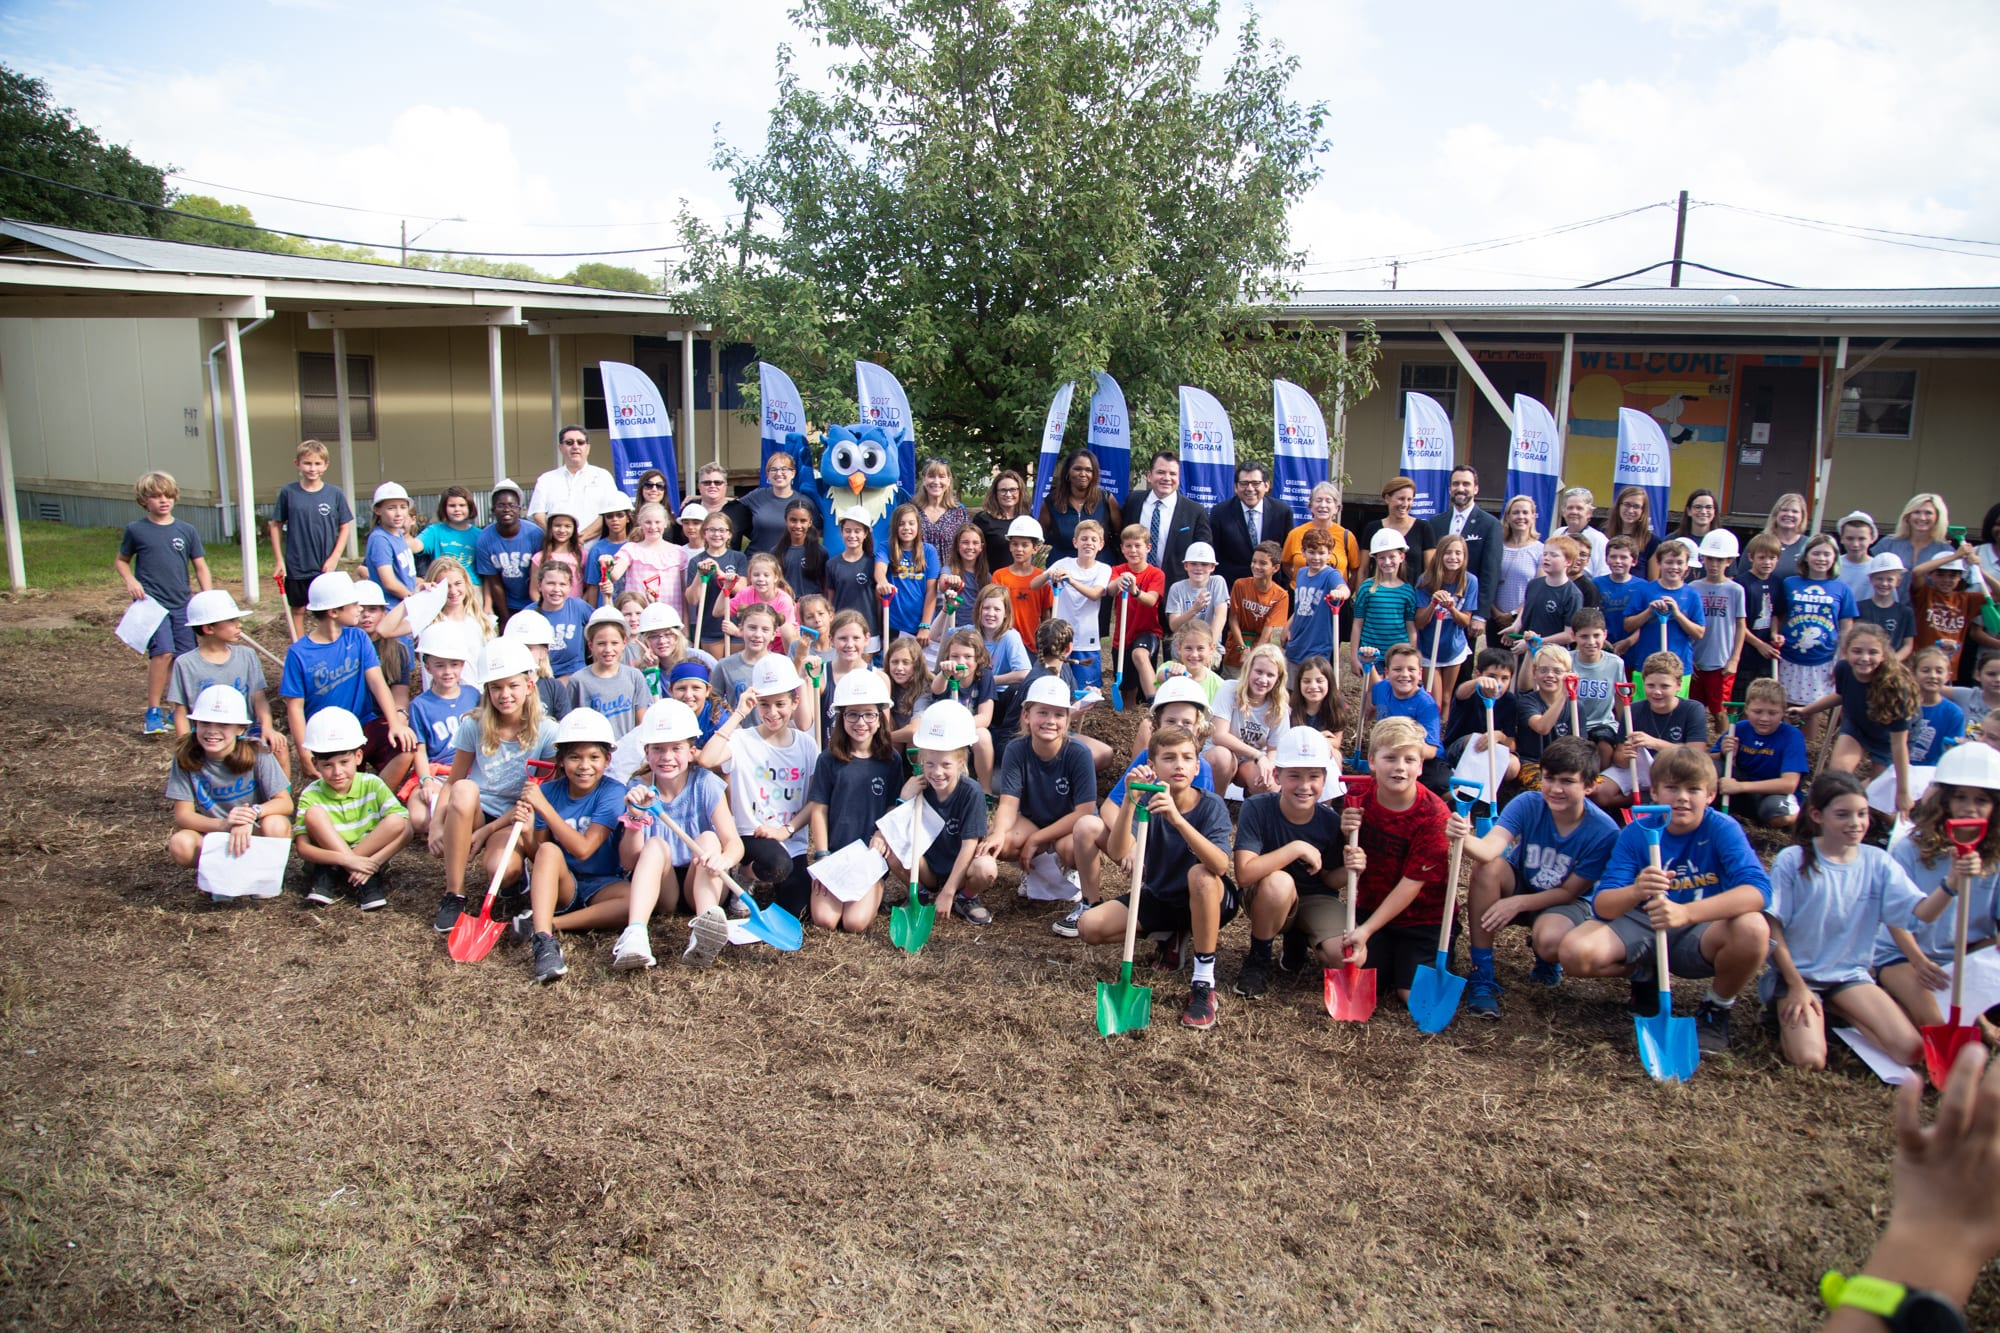 Fifth grade students take part in the groundbreaking ceremony for the Doss Elementary School modernization